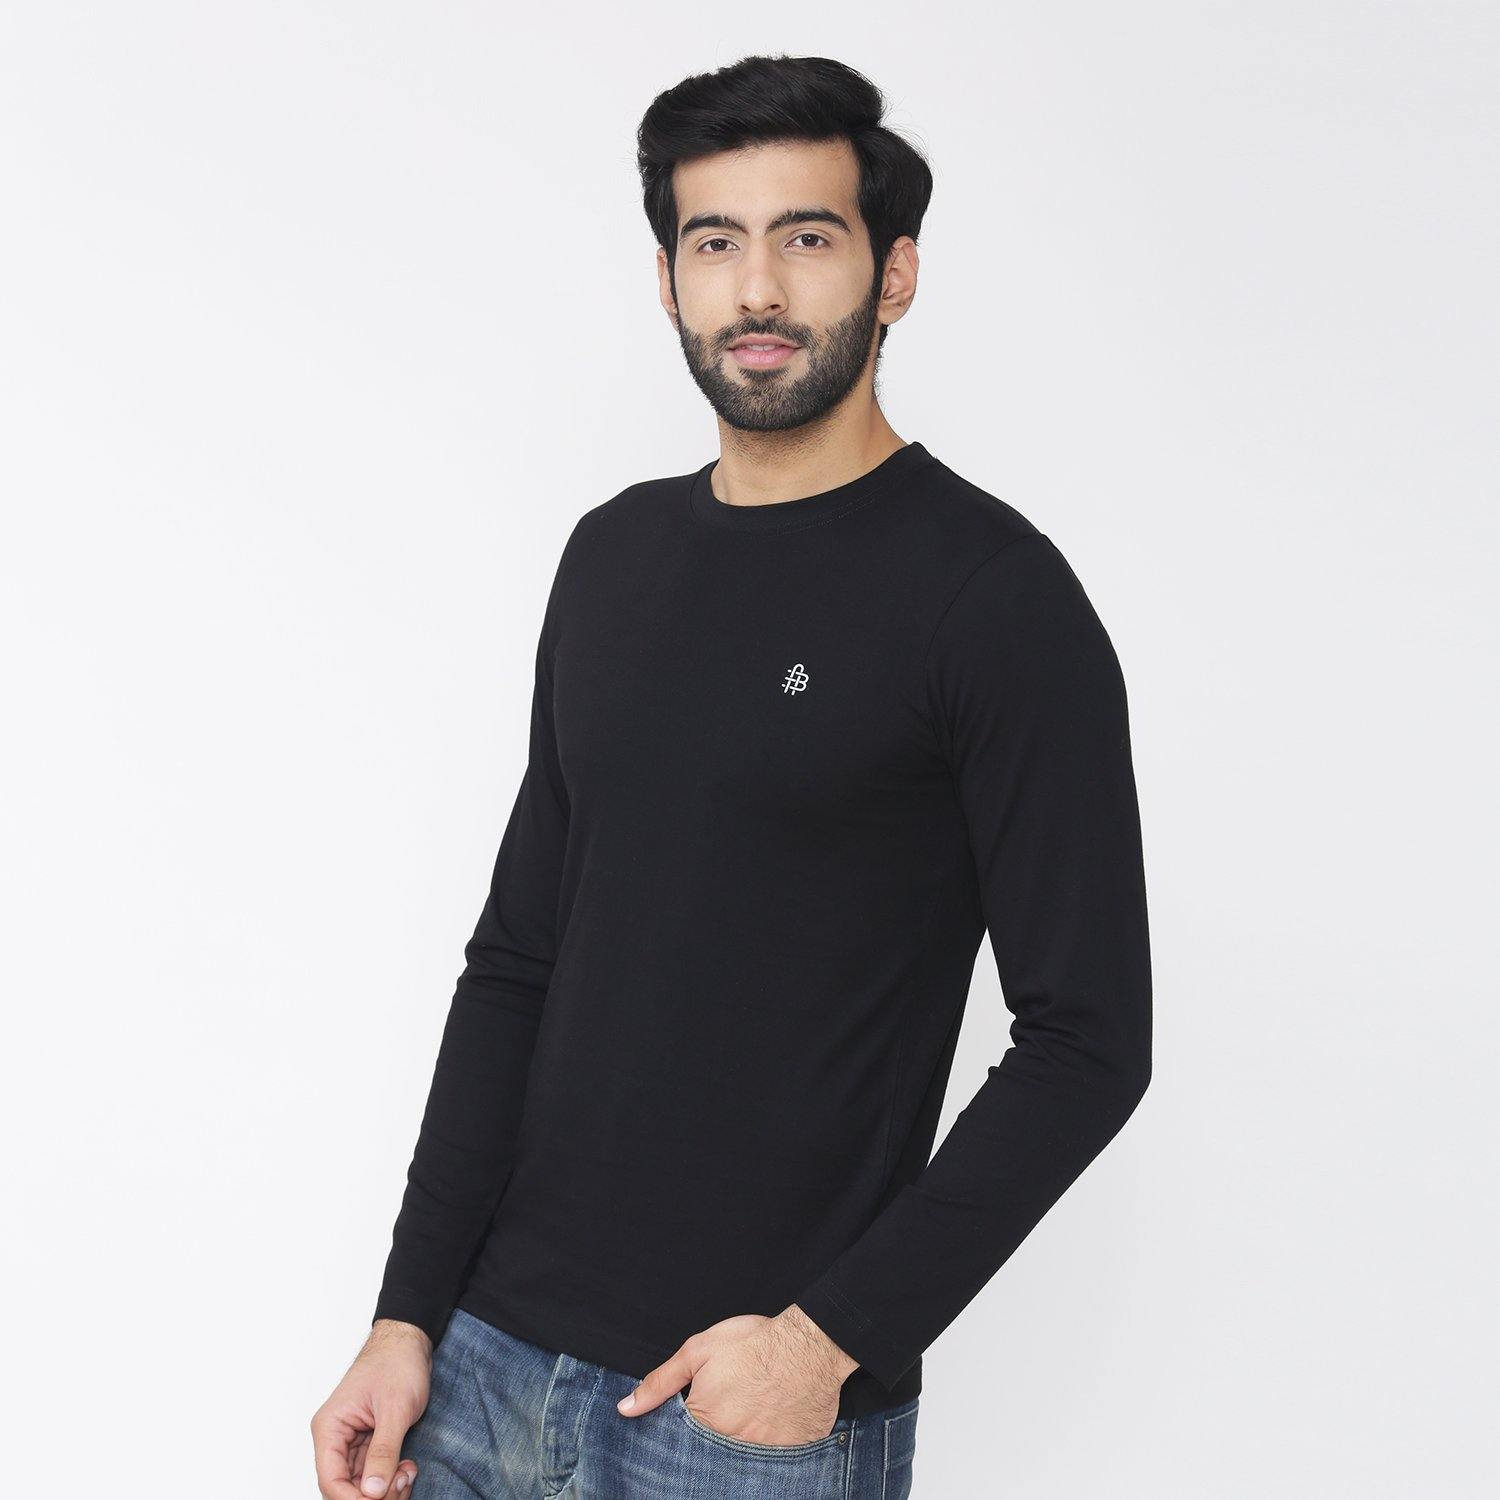 Men's Full Sleeve Round Neck T-Shirt - Black